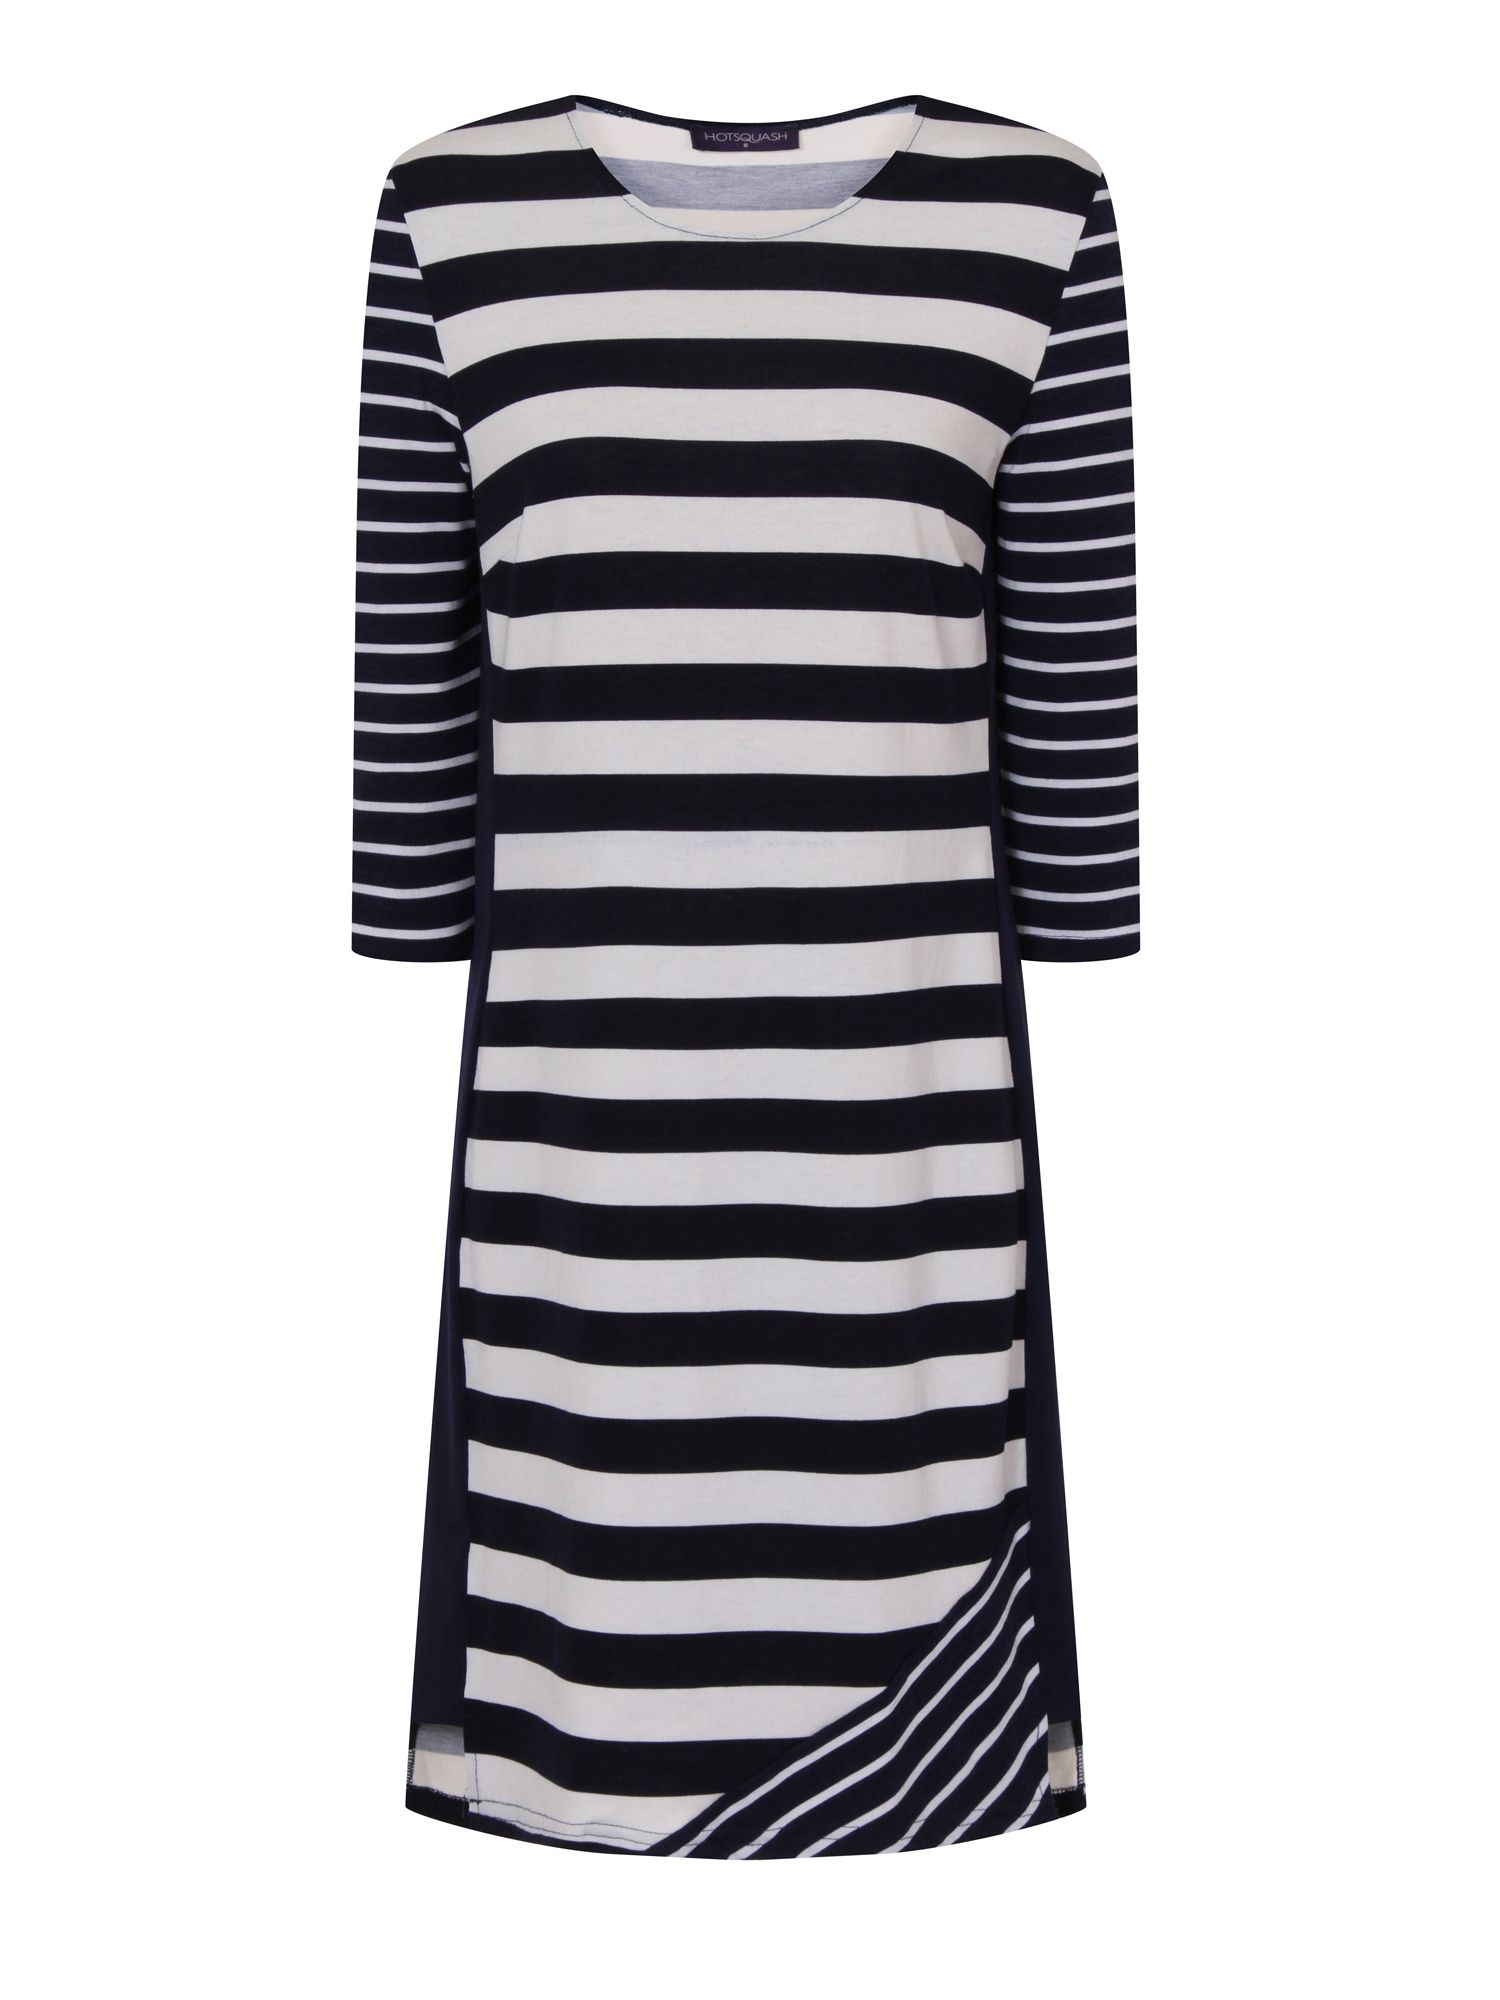 HotSquash Striped York Dress in CoolFresh Fabric, Multi-Coloured